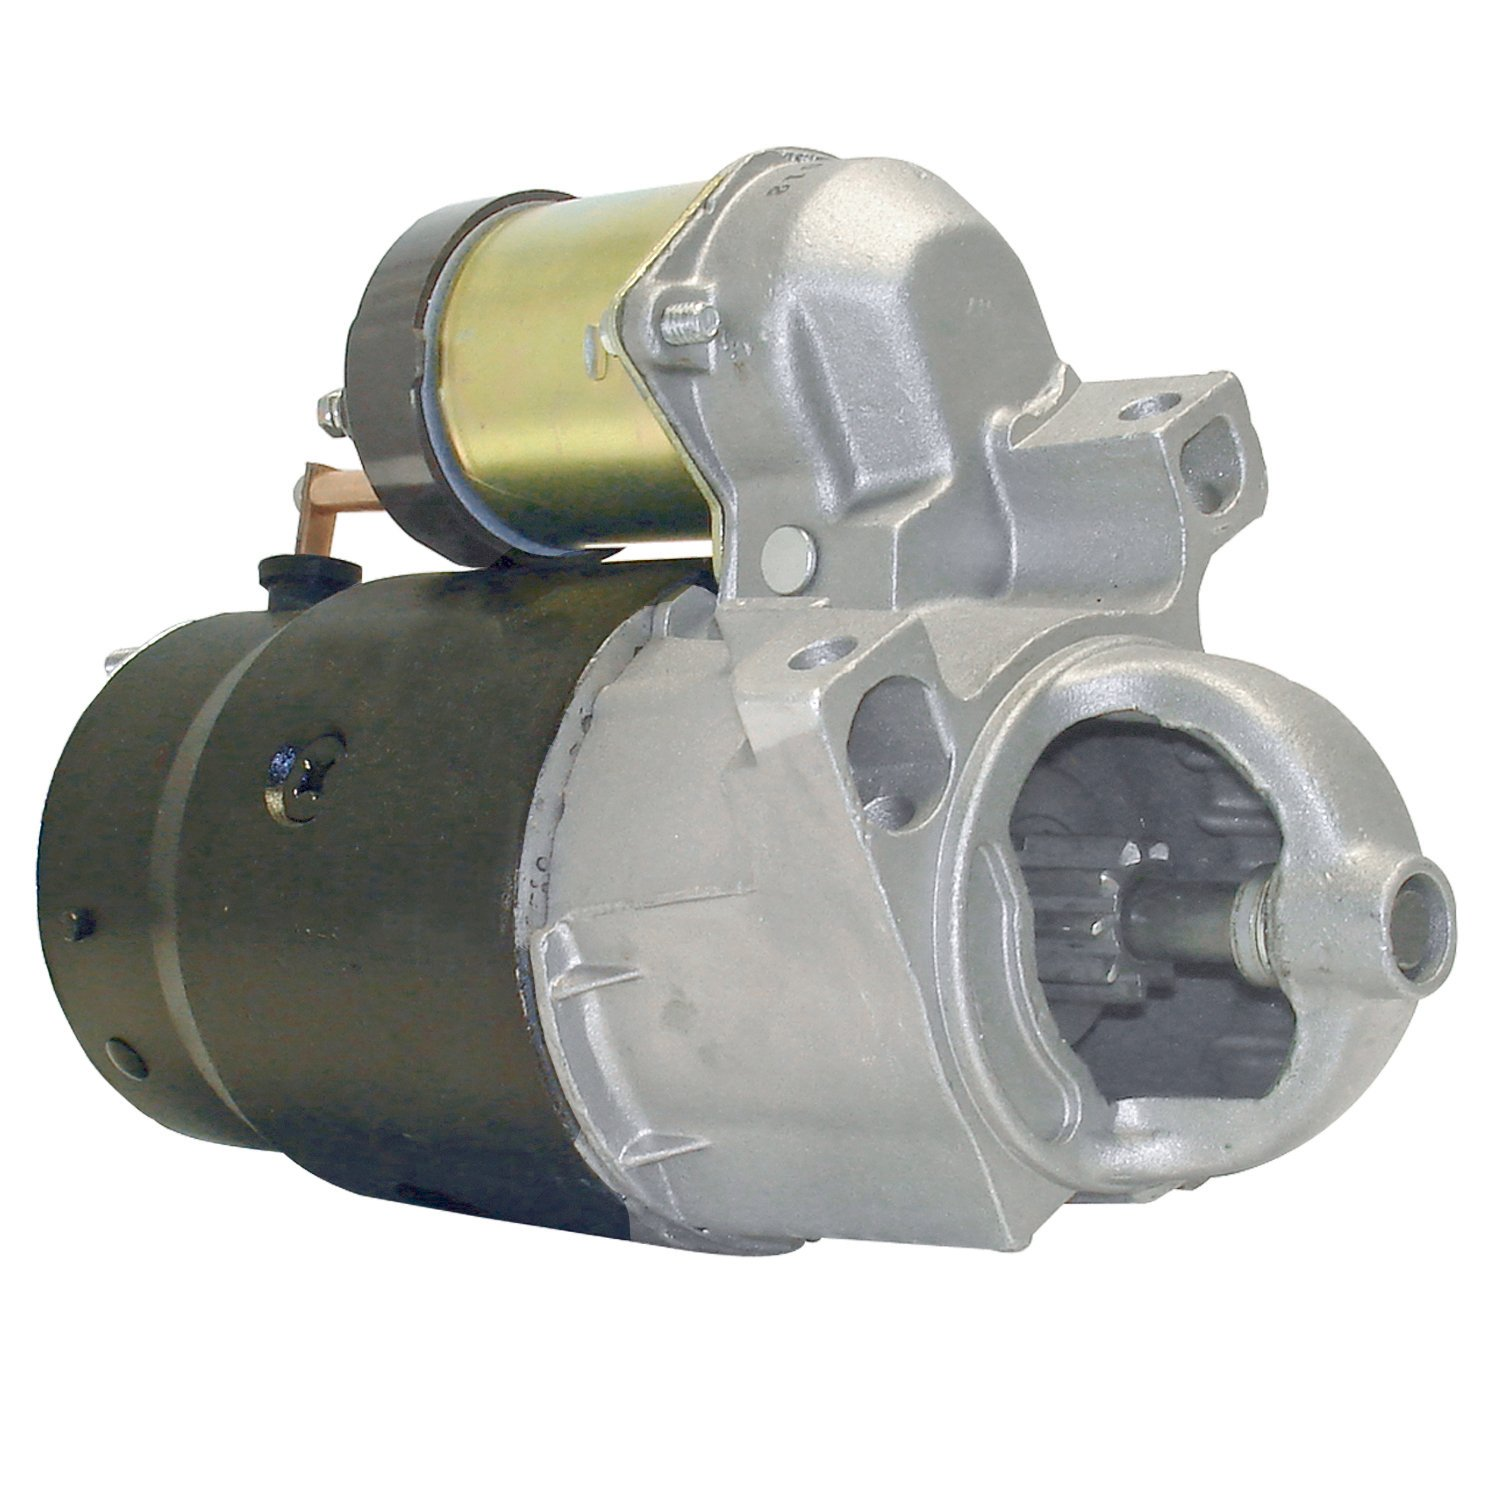 ACDelco 336-1880 Professional Starter, Remanufactured by ACDelco